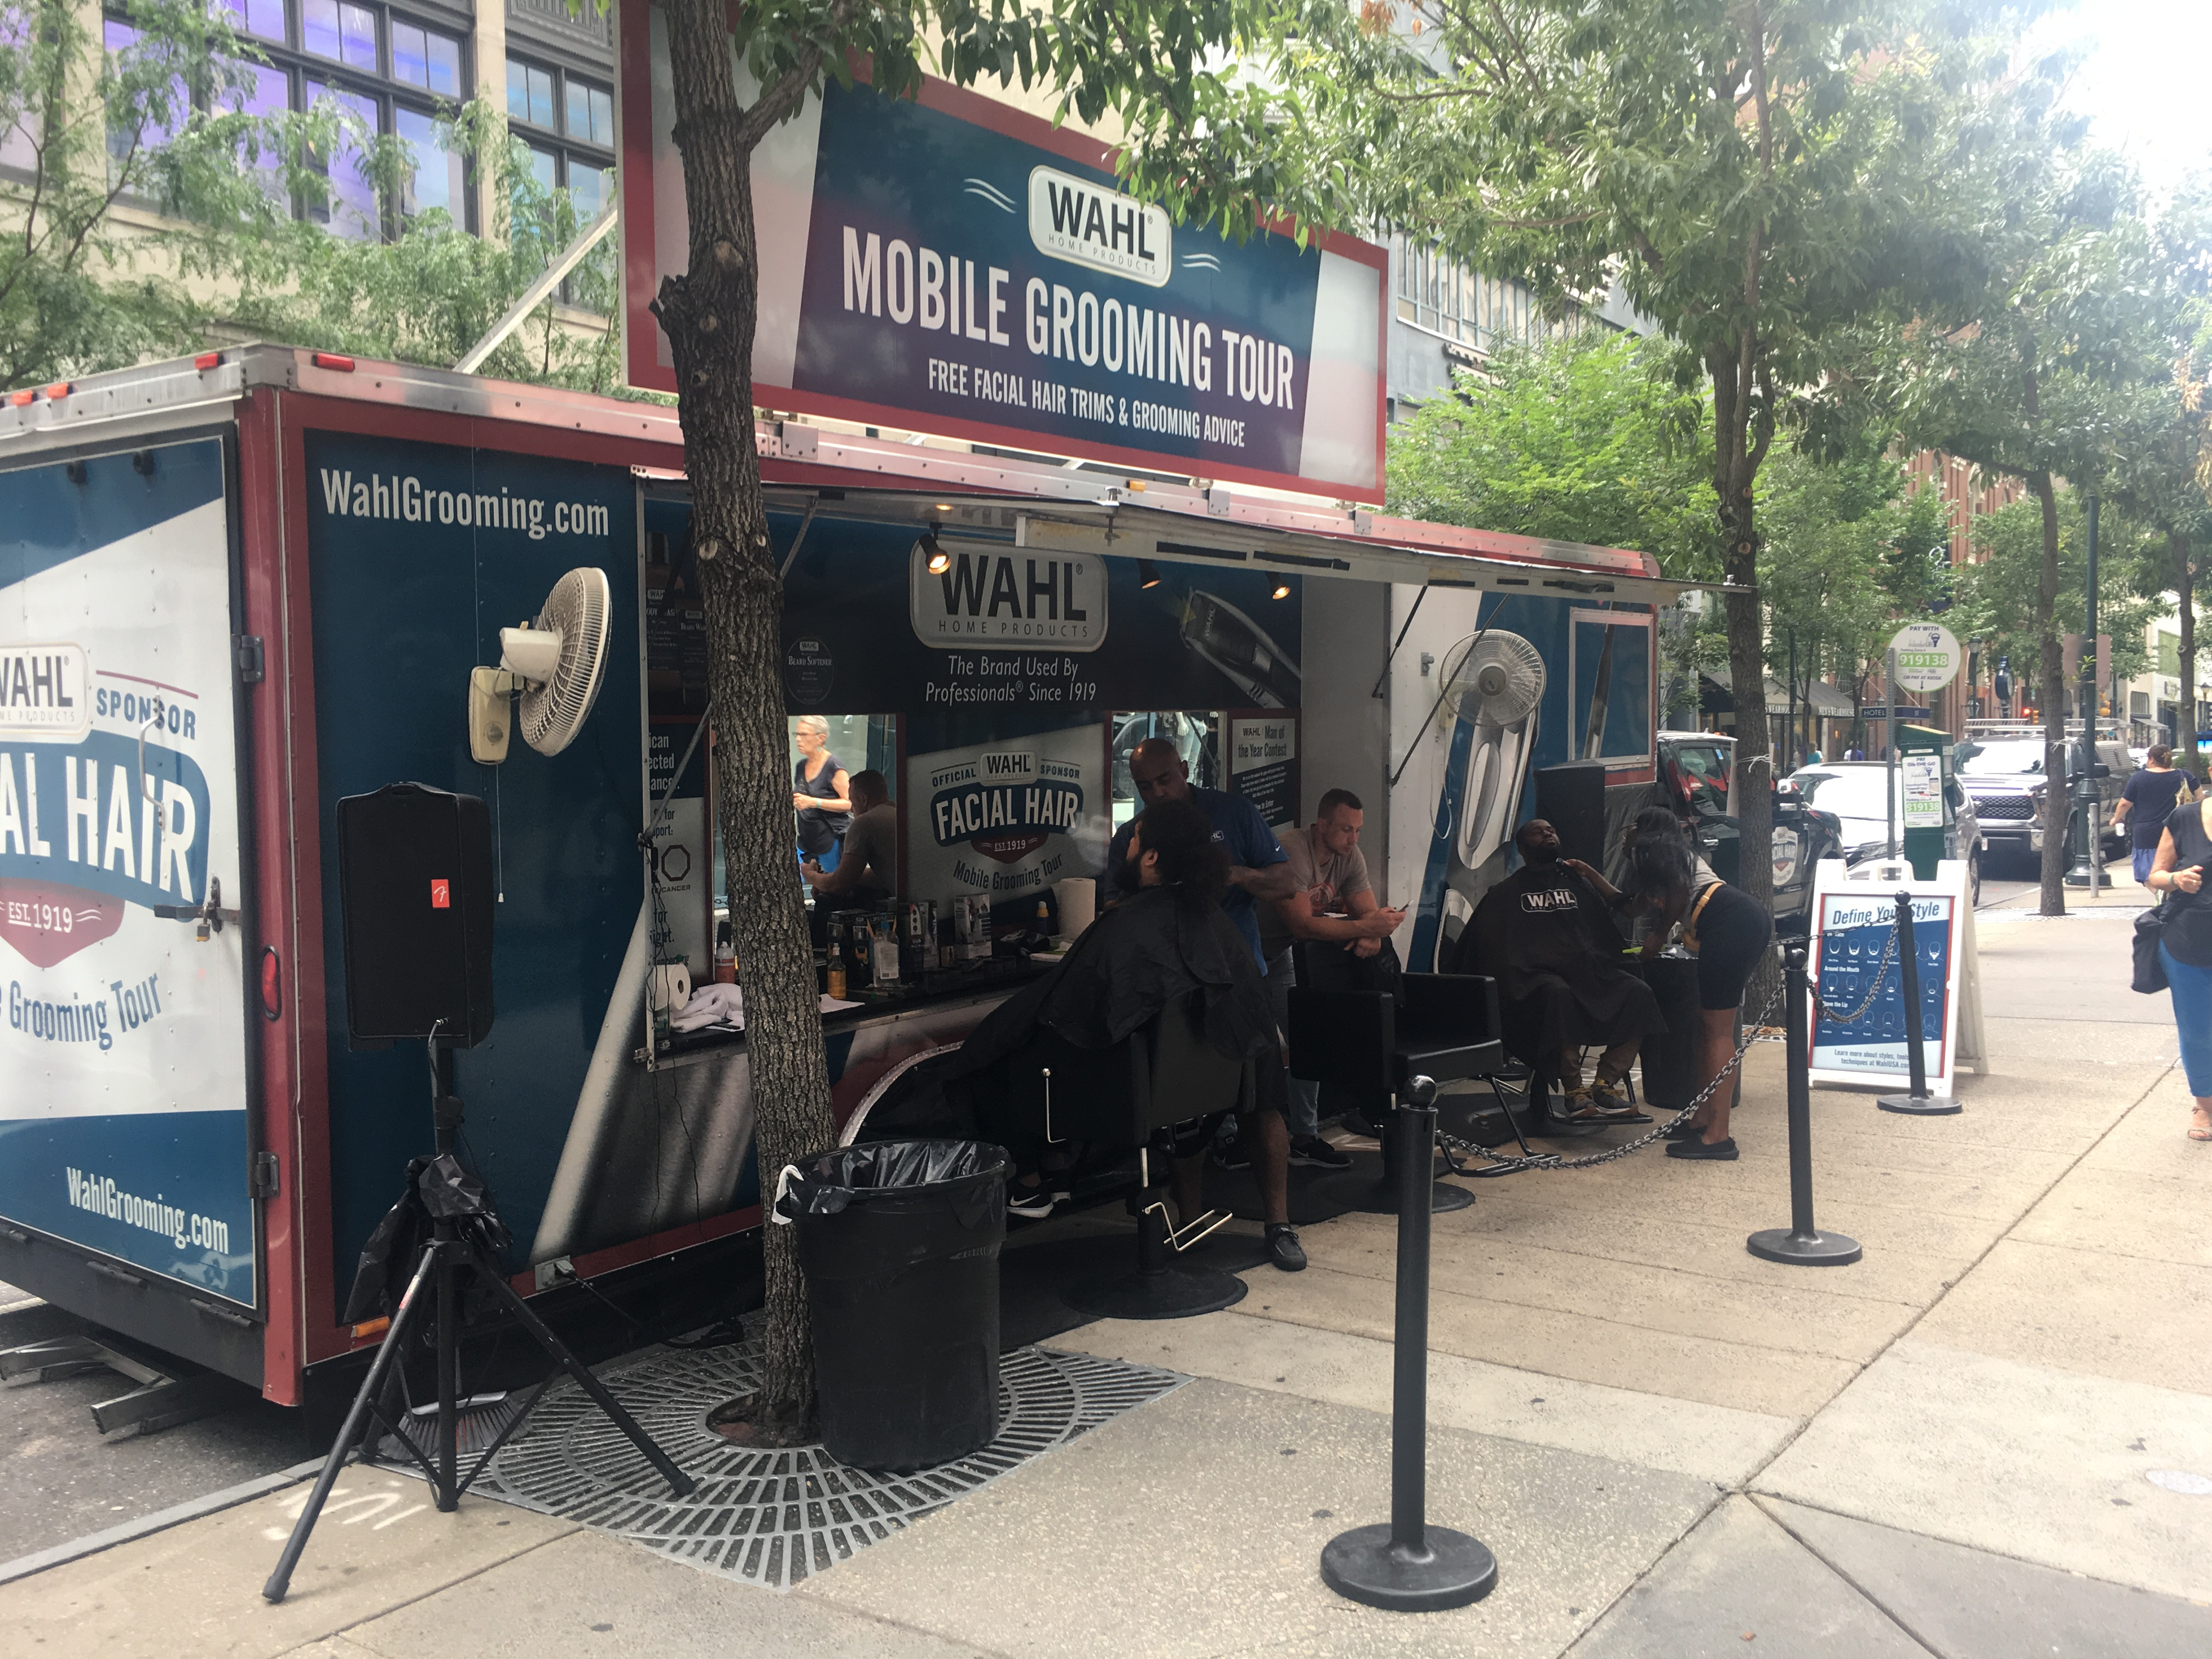 Wahl Grooming Tour at Liberty Place